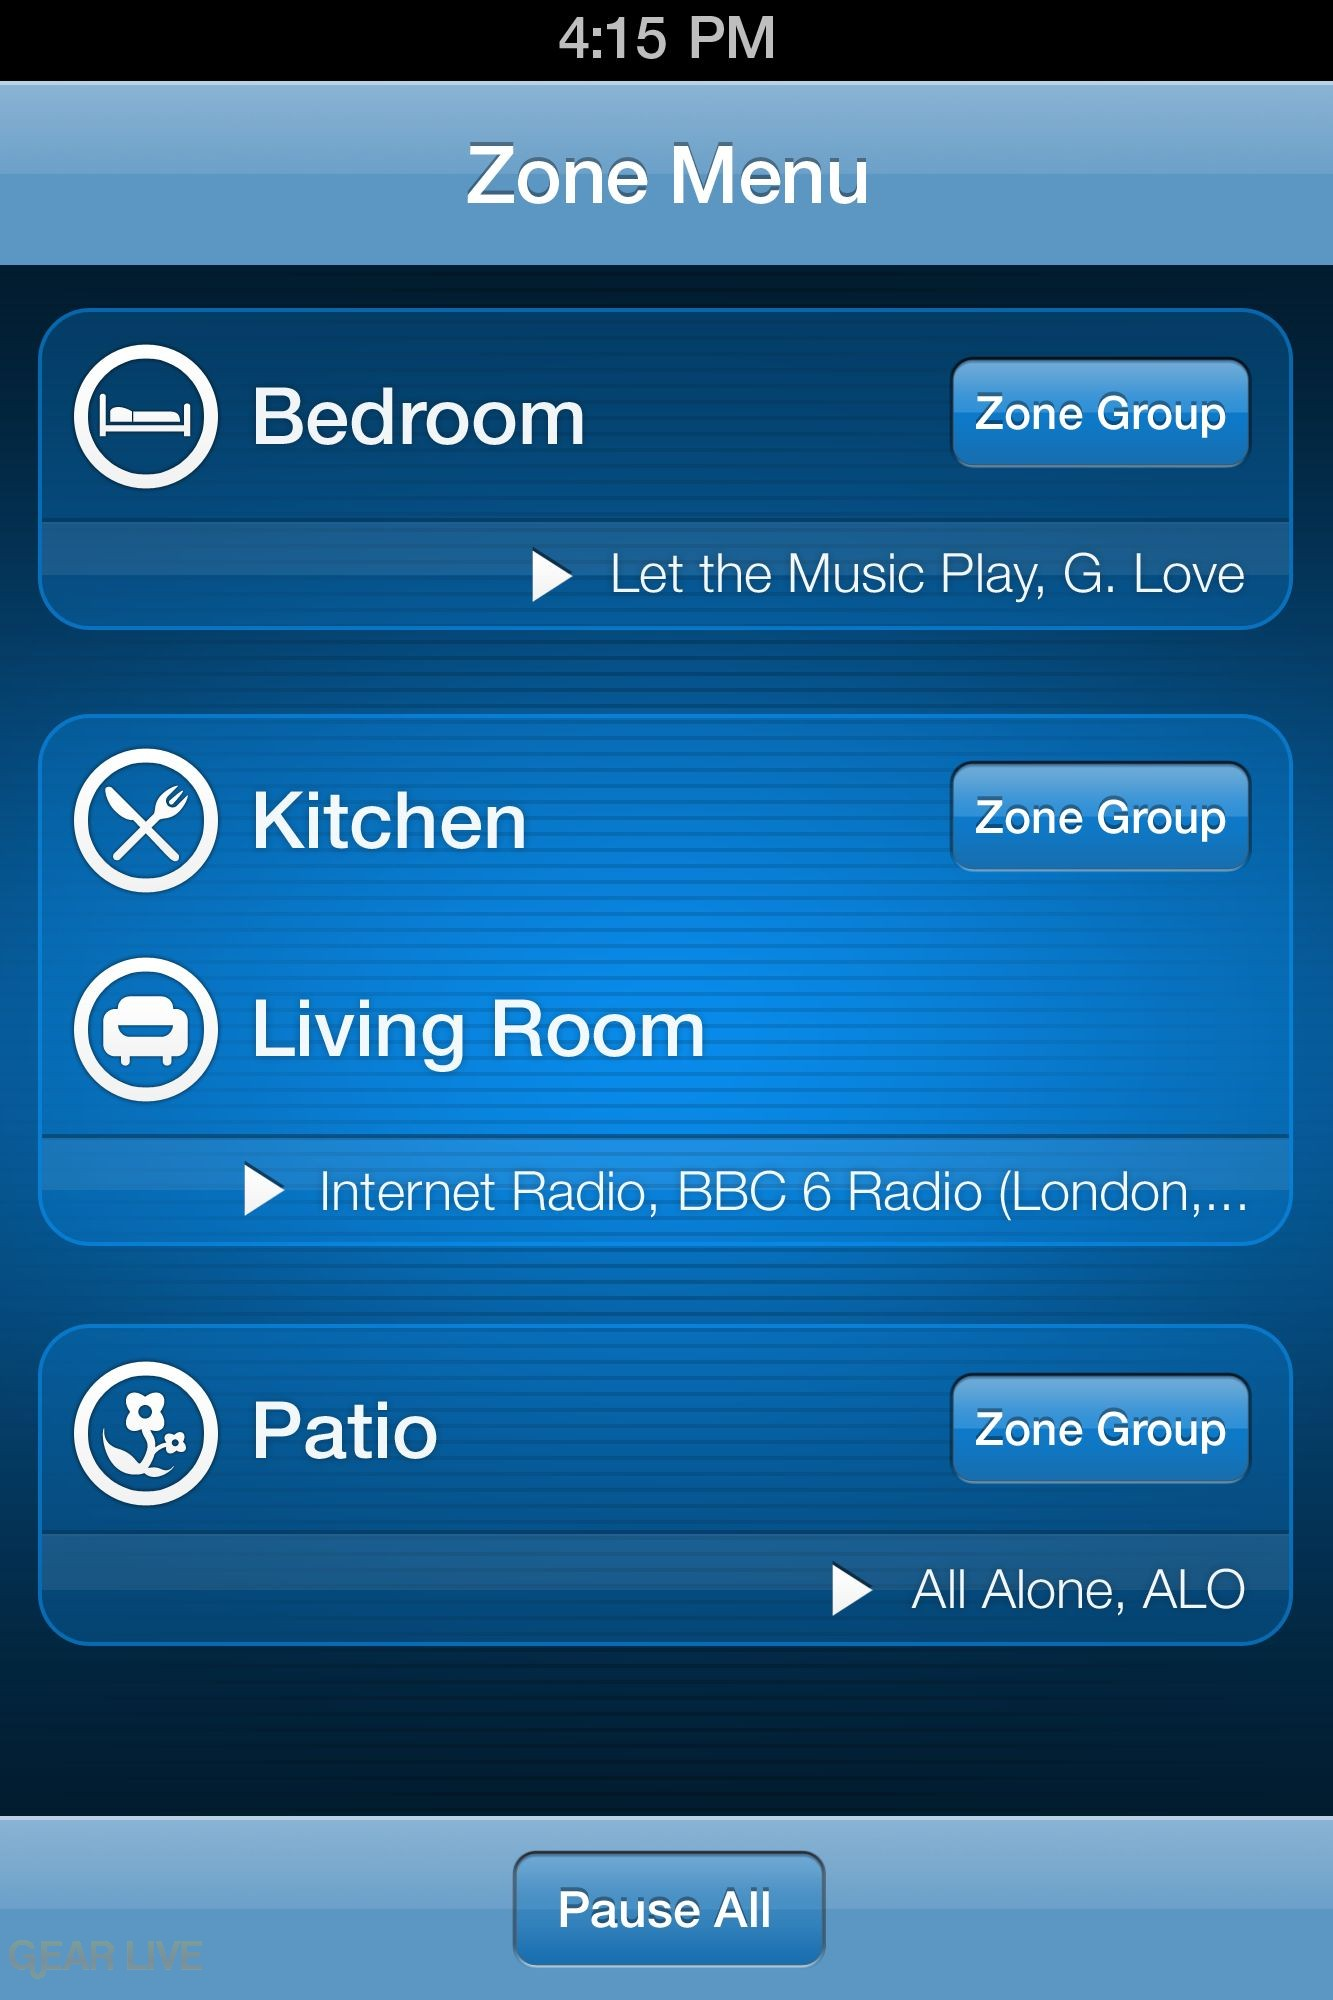 Sonos iPhone: Zone Menu